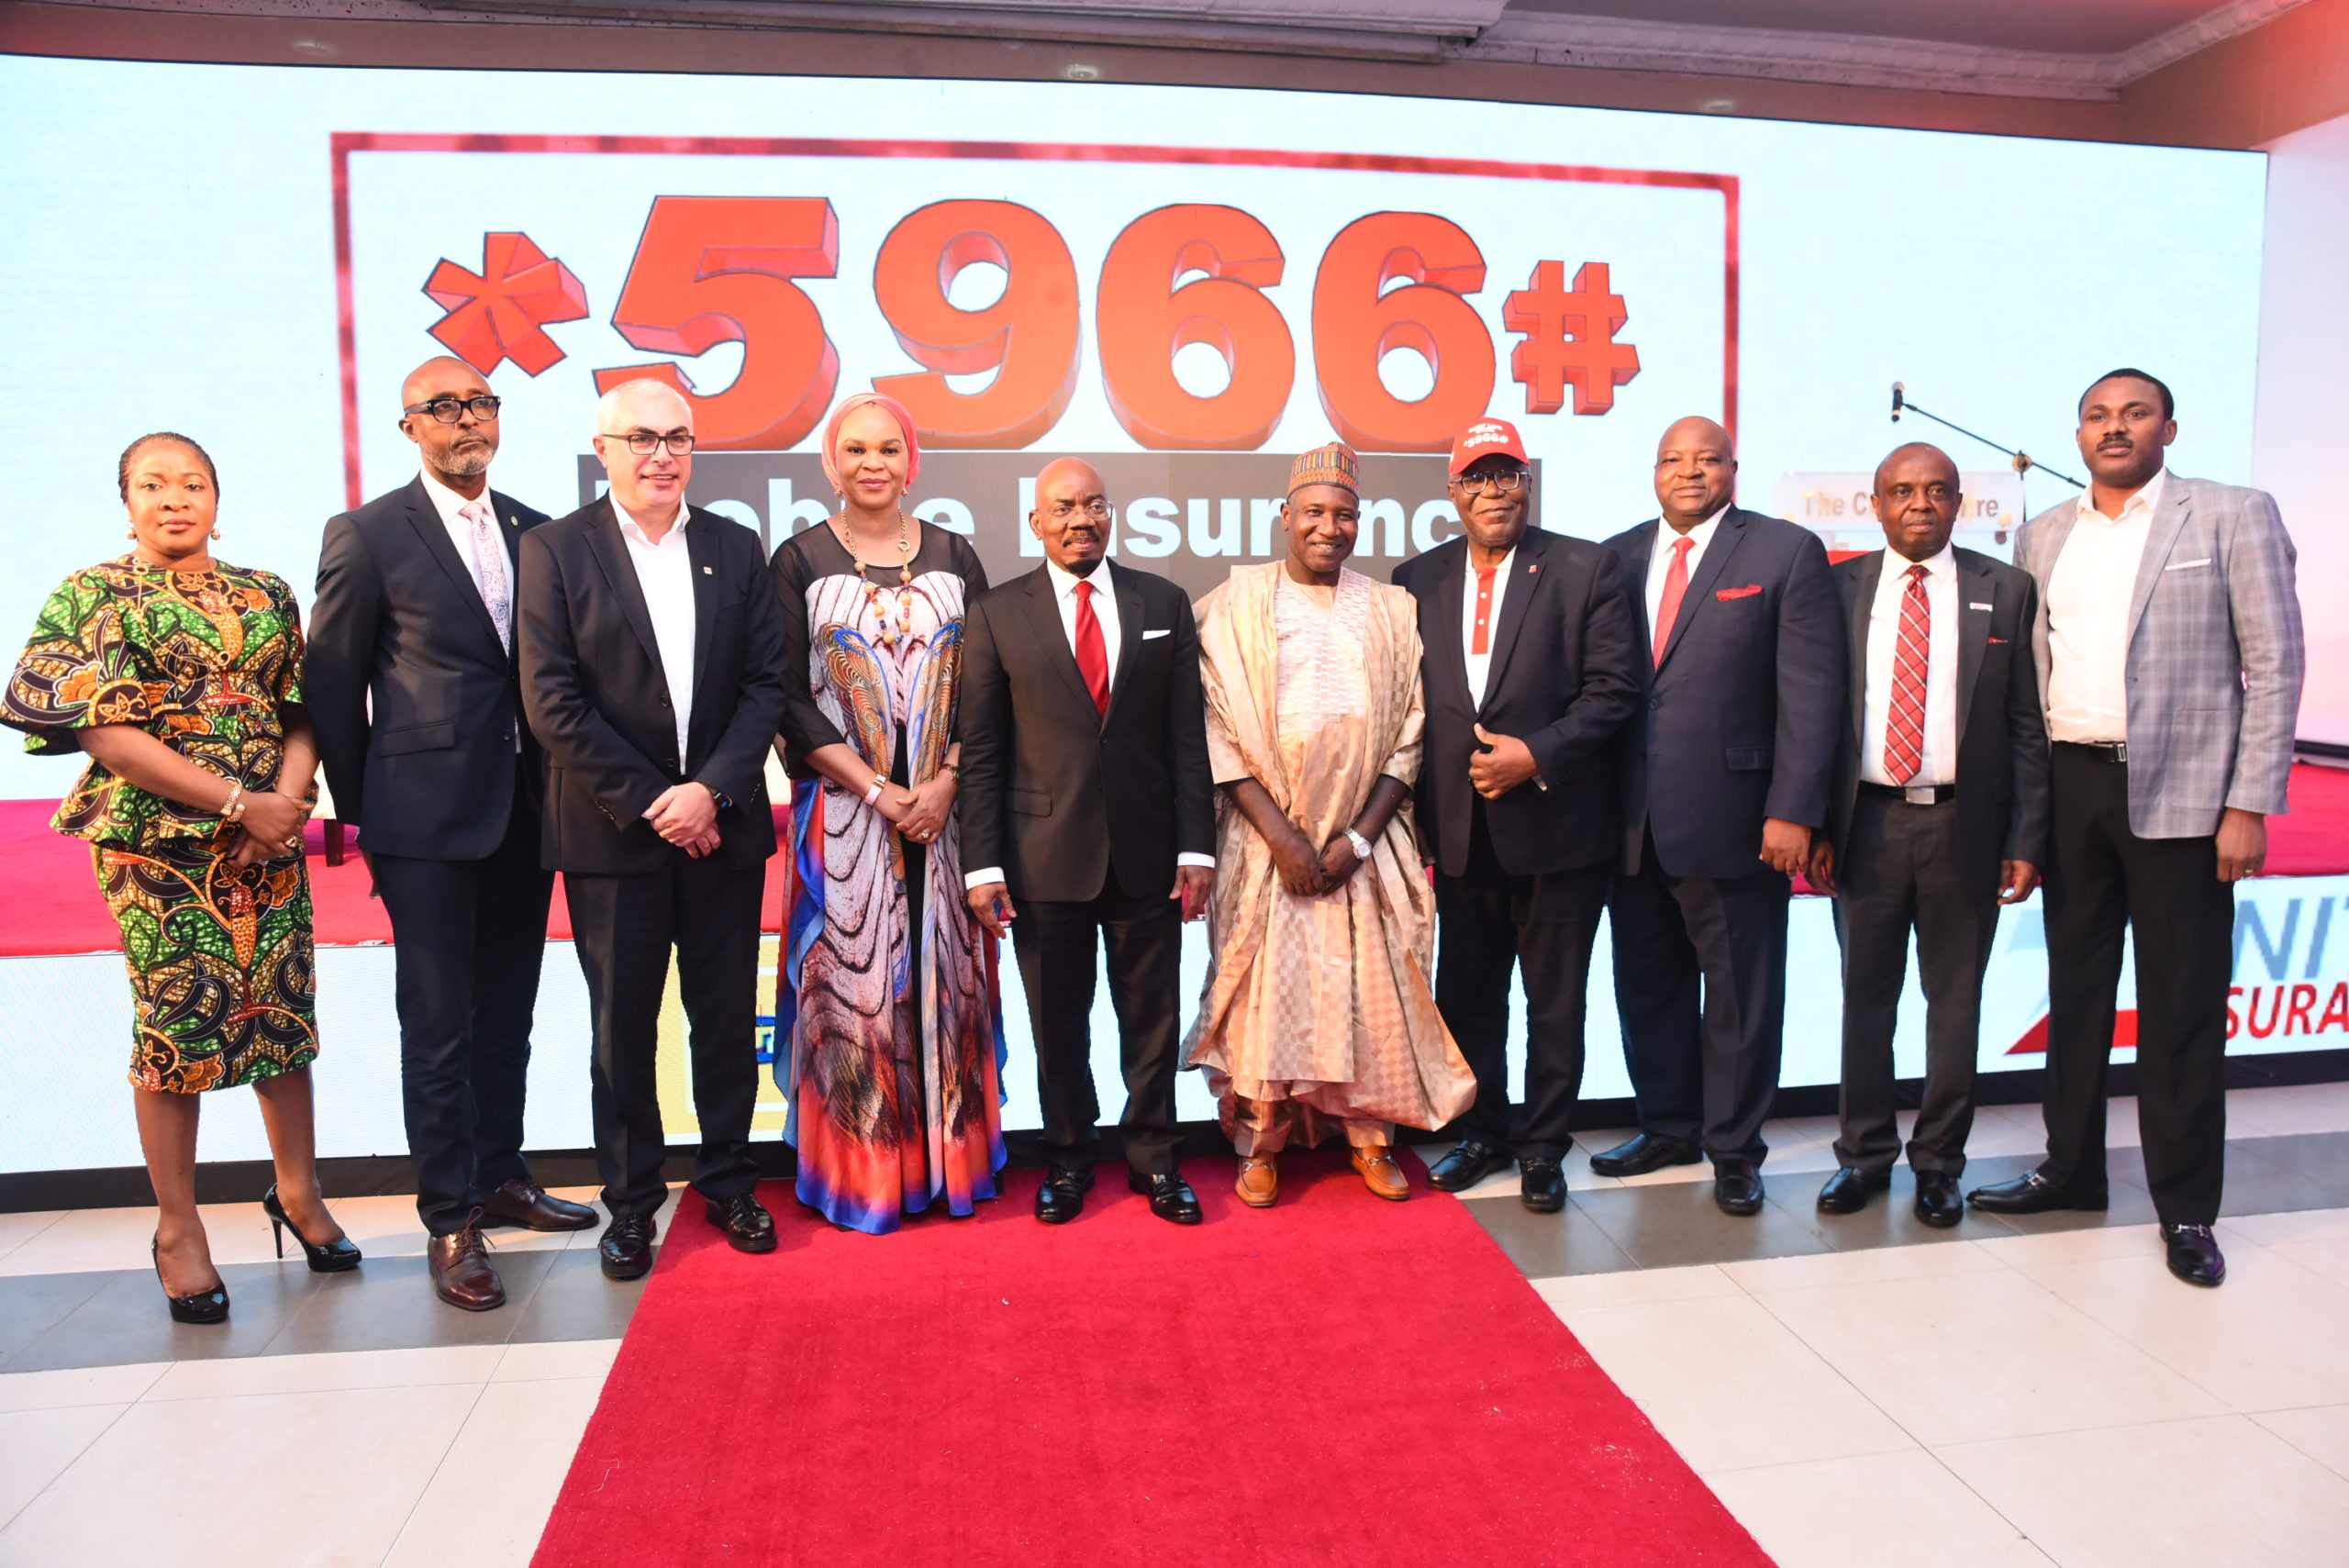 Prudential Zenith Life Insurance Launches Mobile Payments for Protection With *5966# USSD Code - Brand Spur